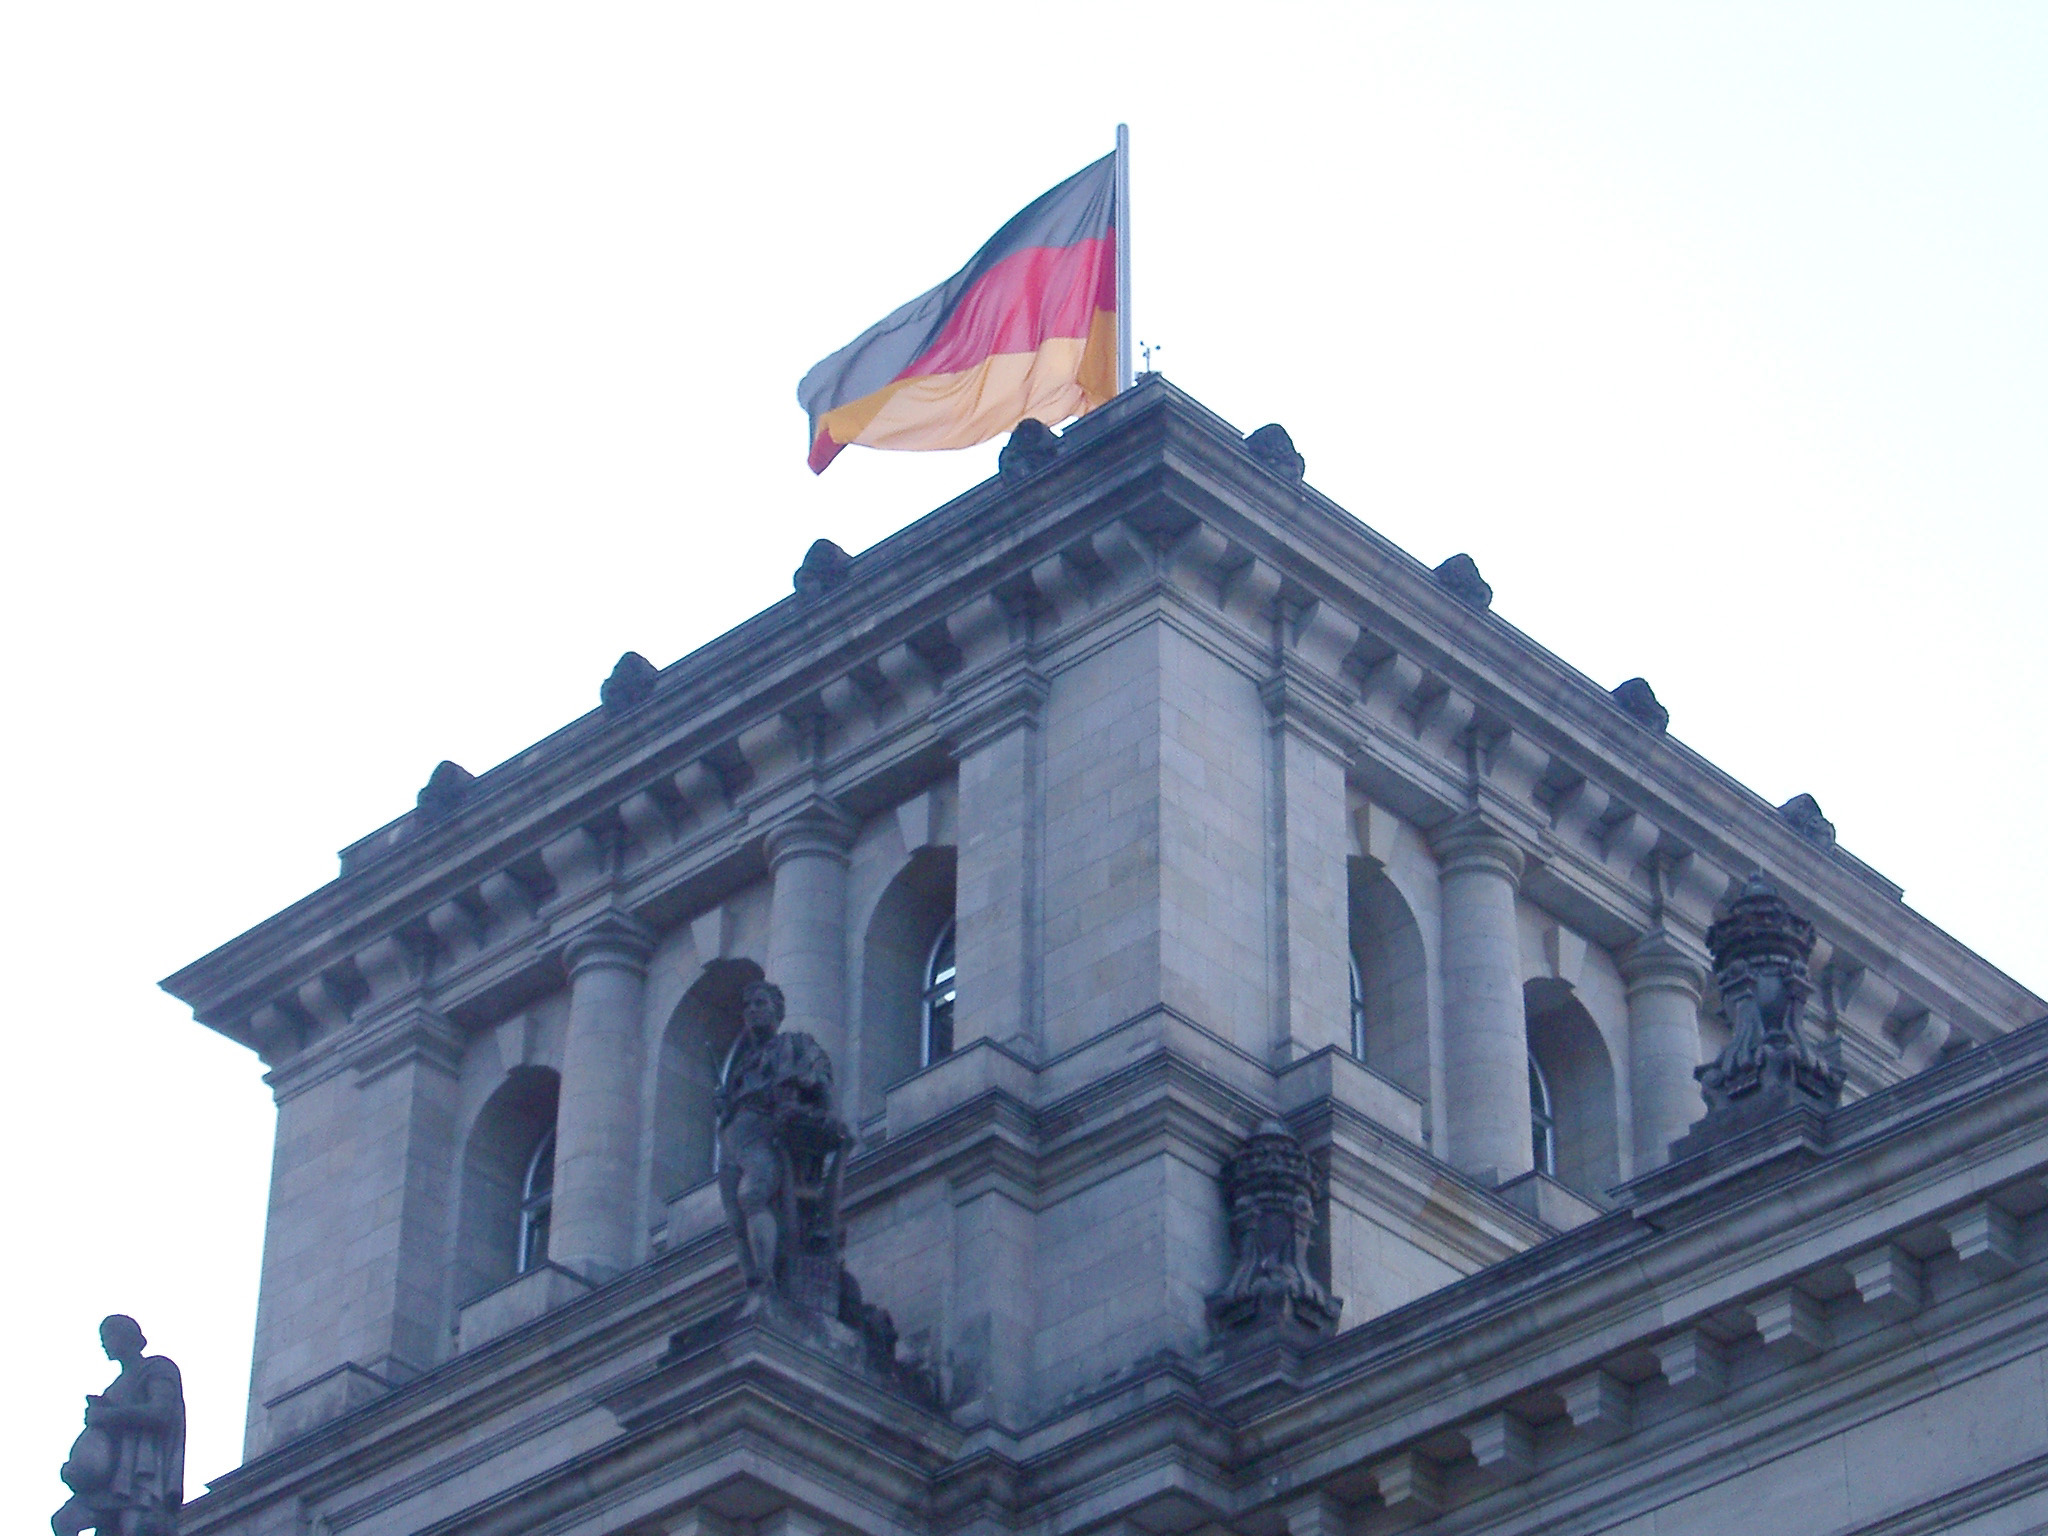 German flag flying at the Reichstag Building, the seat of the government in Berlin, against a bright sky